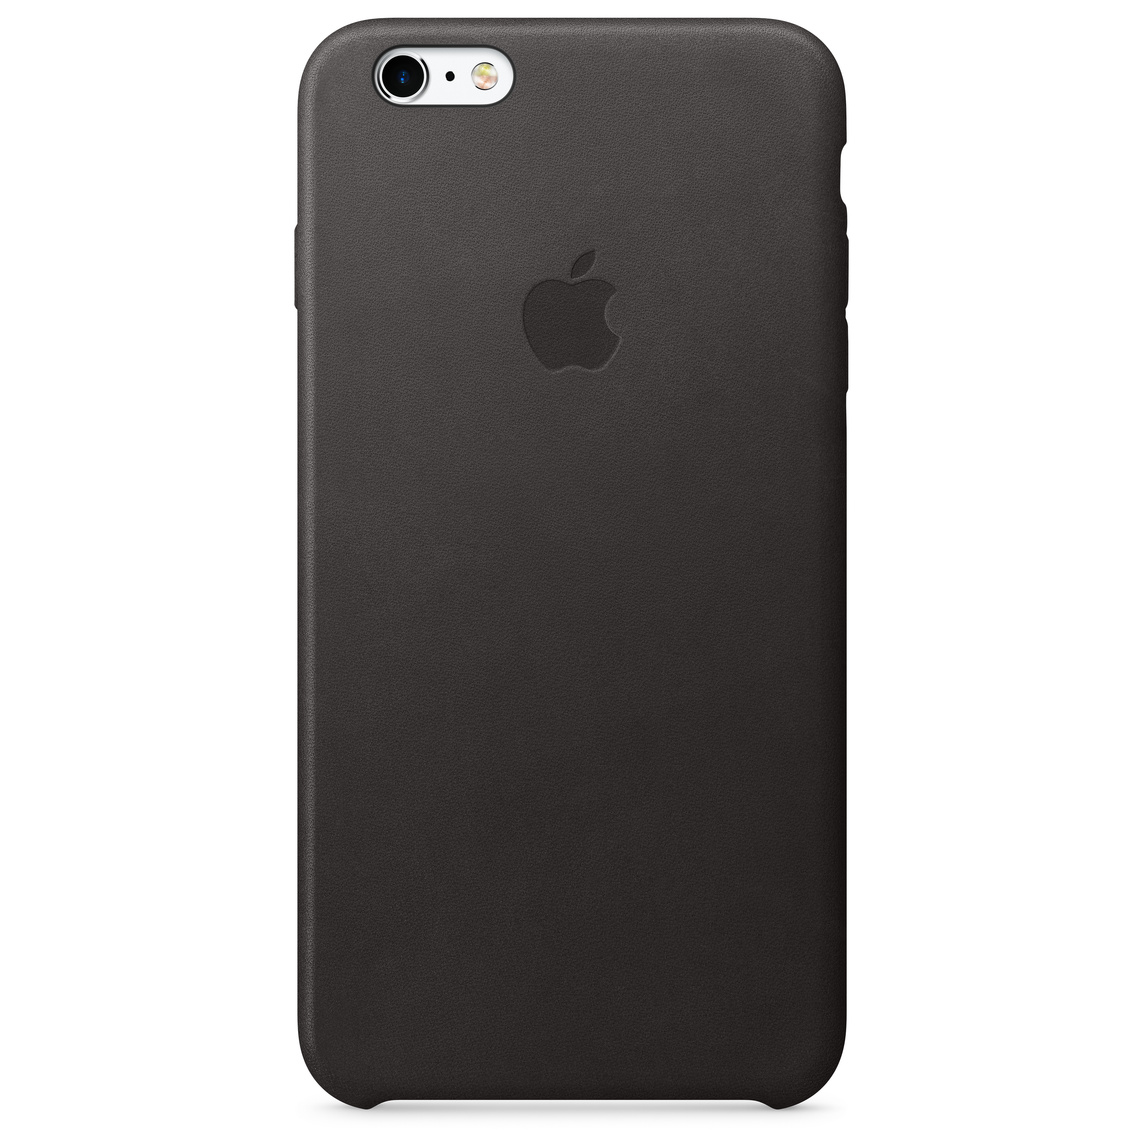 outlet store sale 26282 e7397 iPhone 6 Plus / 6s Plus Leather Case - Black